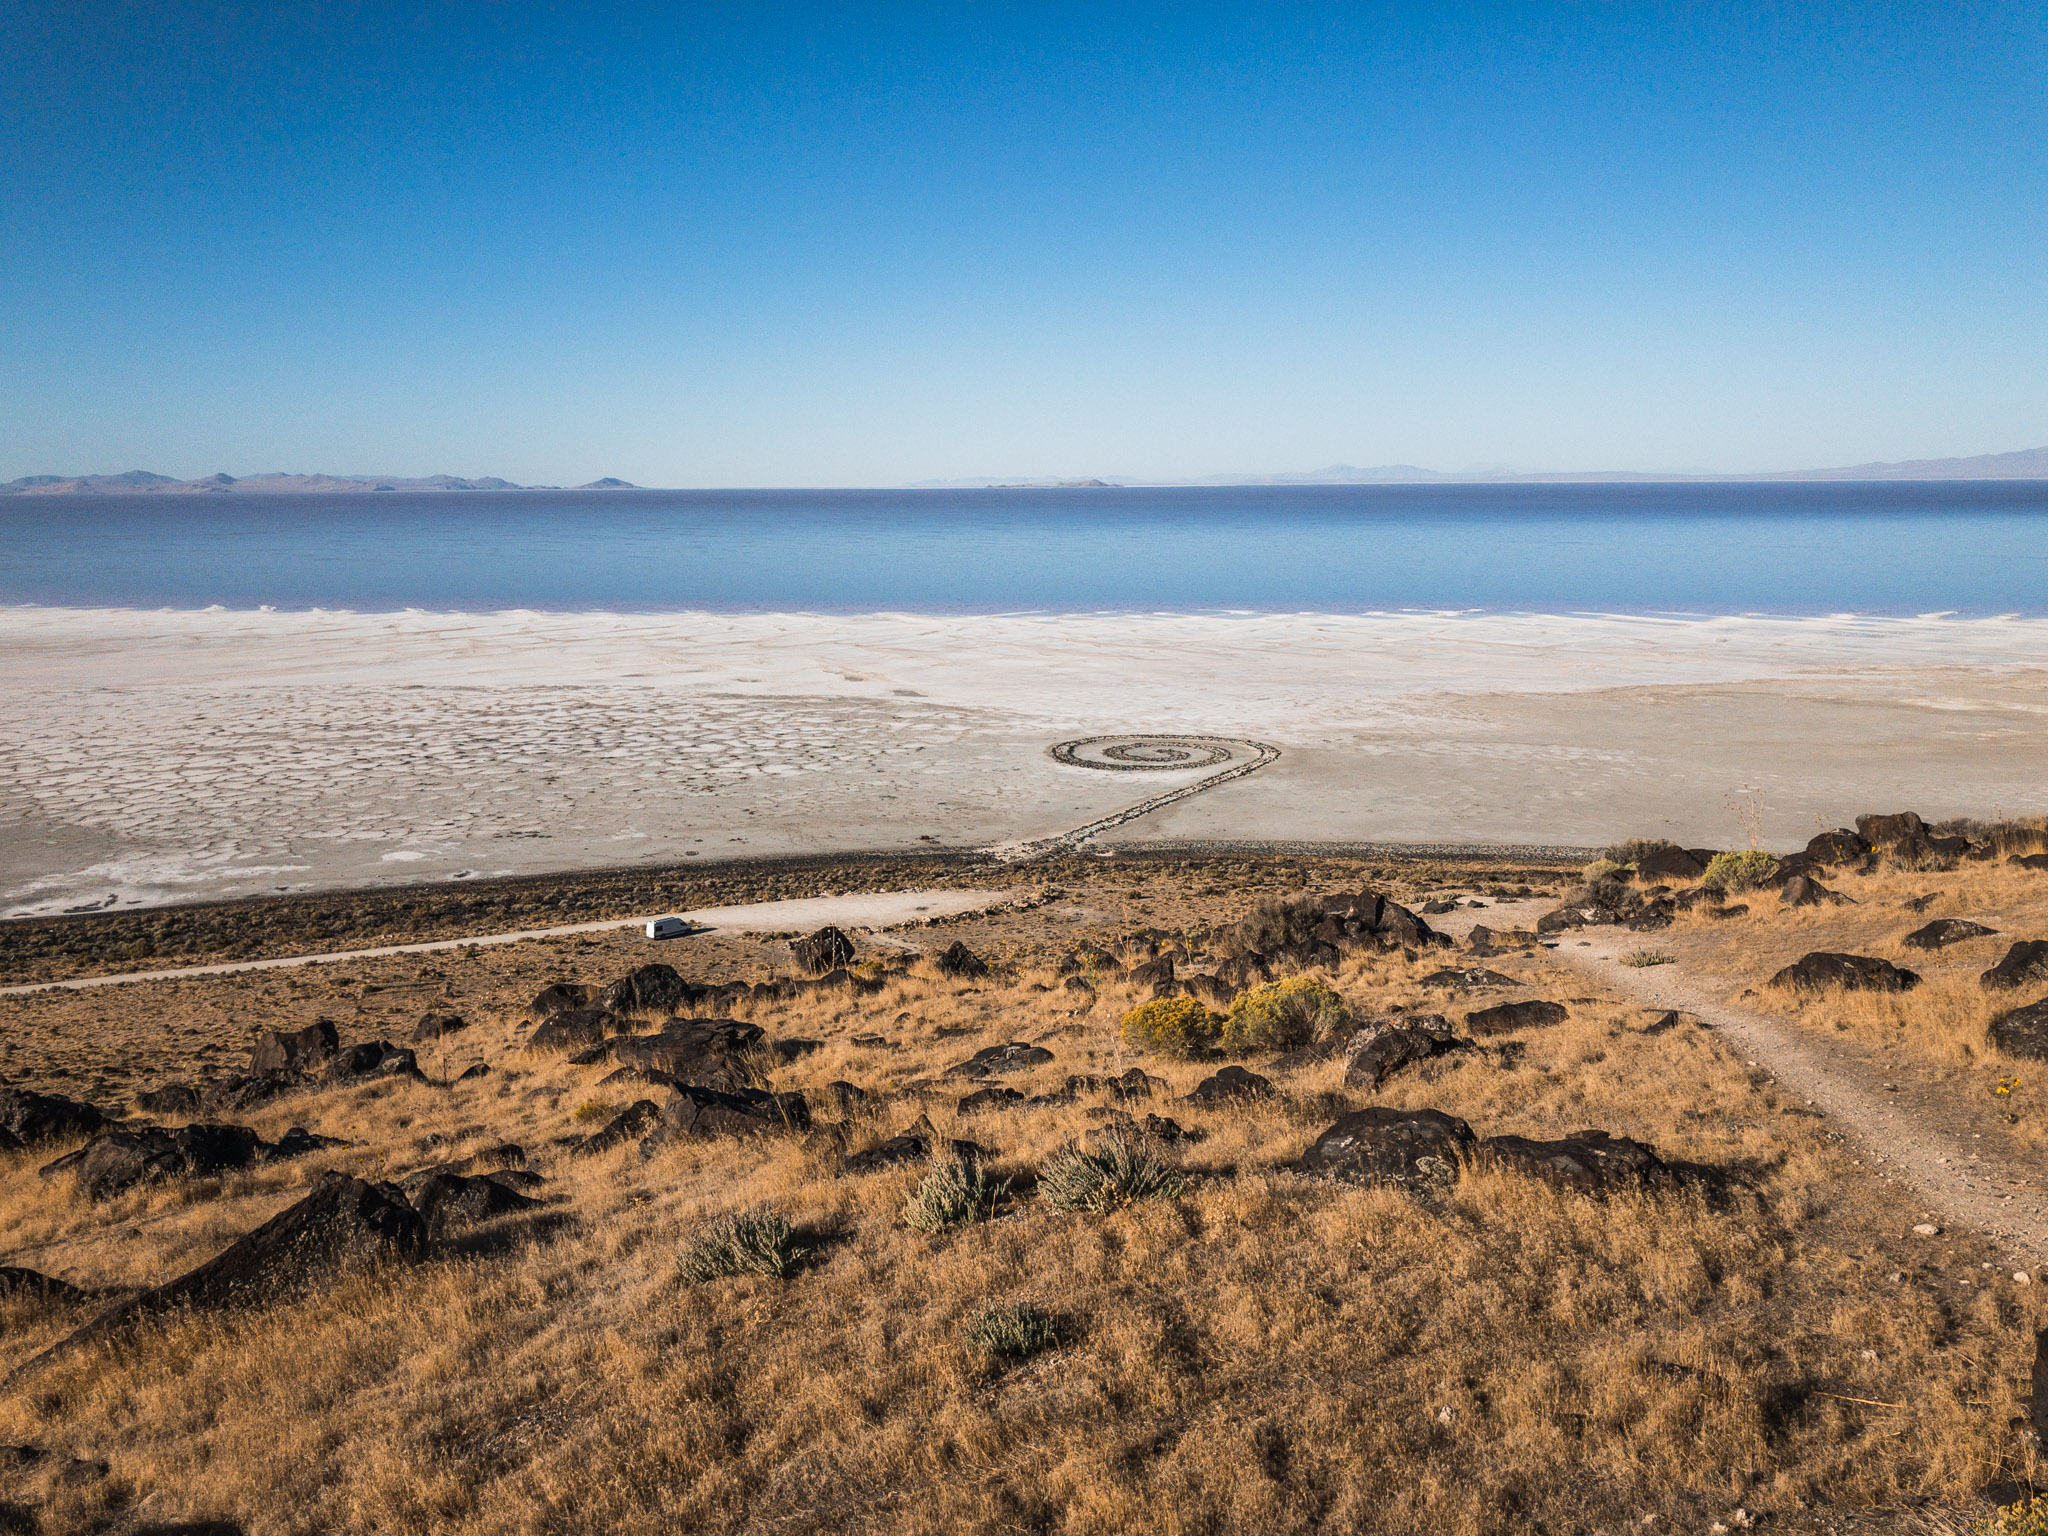 The Golden Spike & The Spiral Jetty